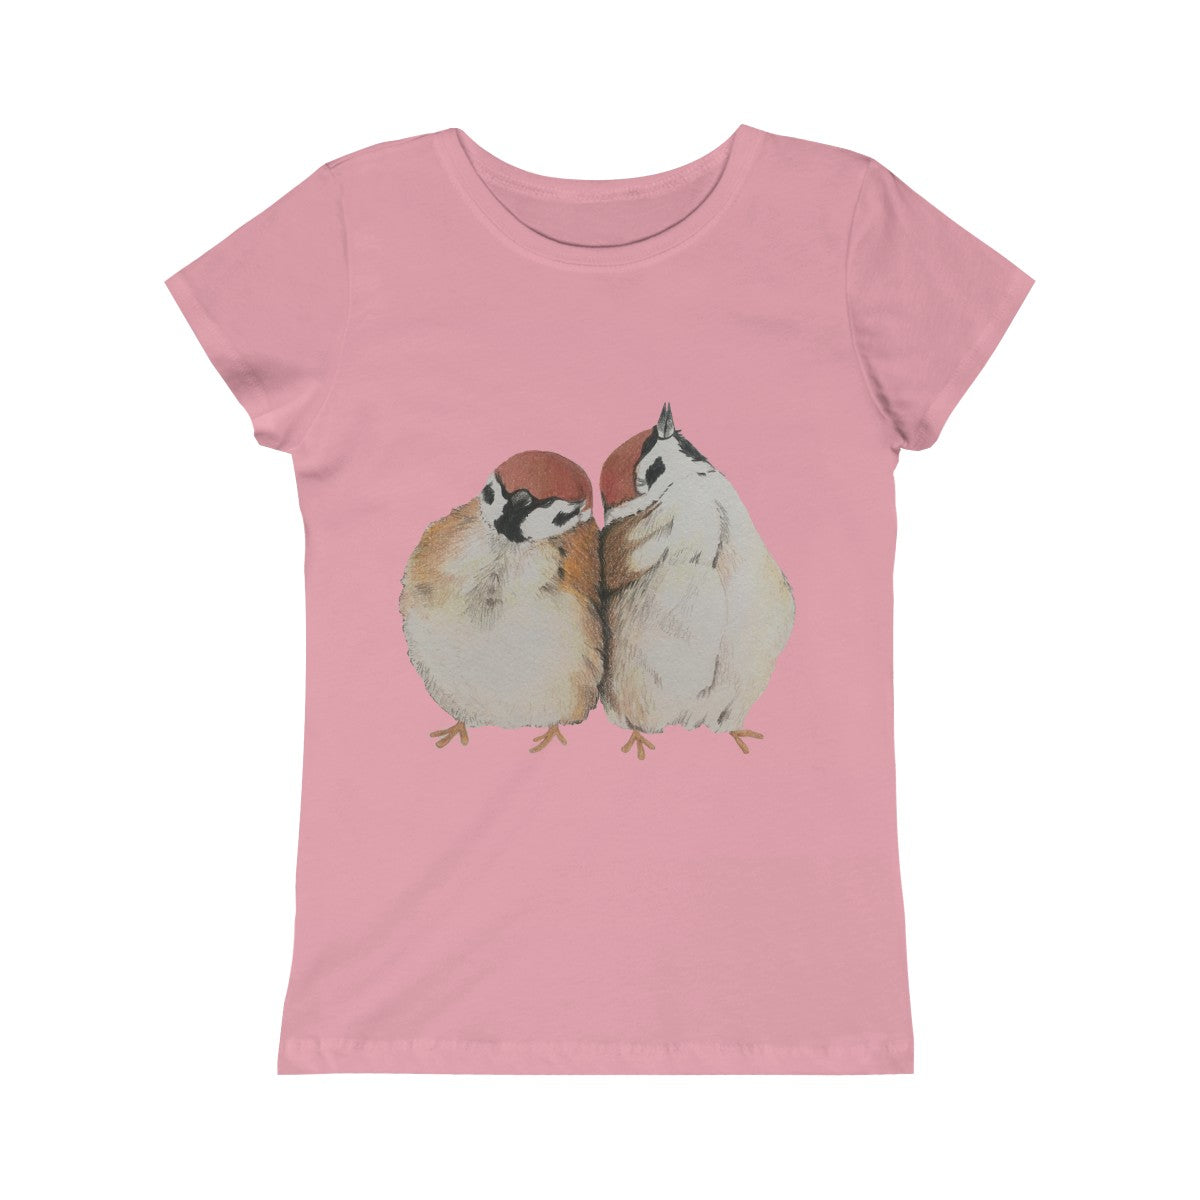 Bird's Tales Girls Princess Tee